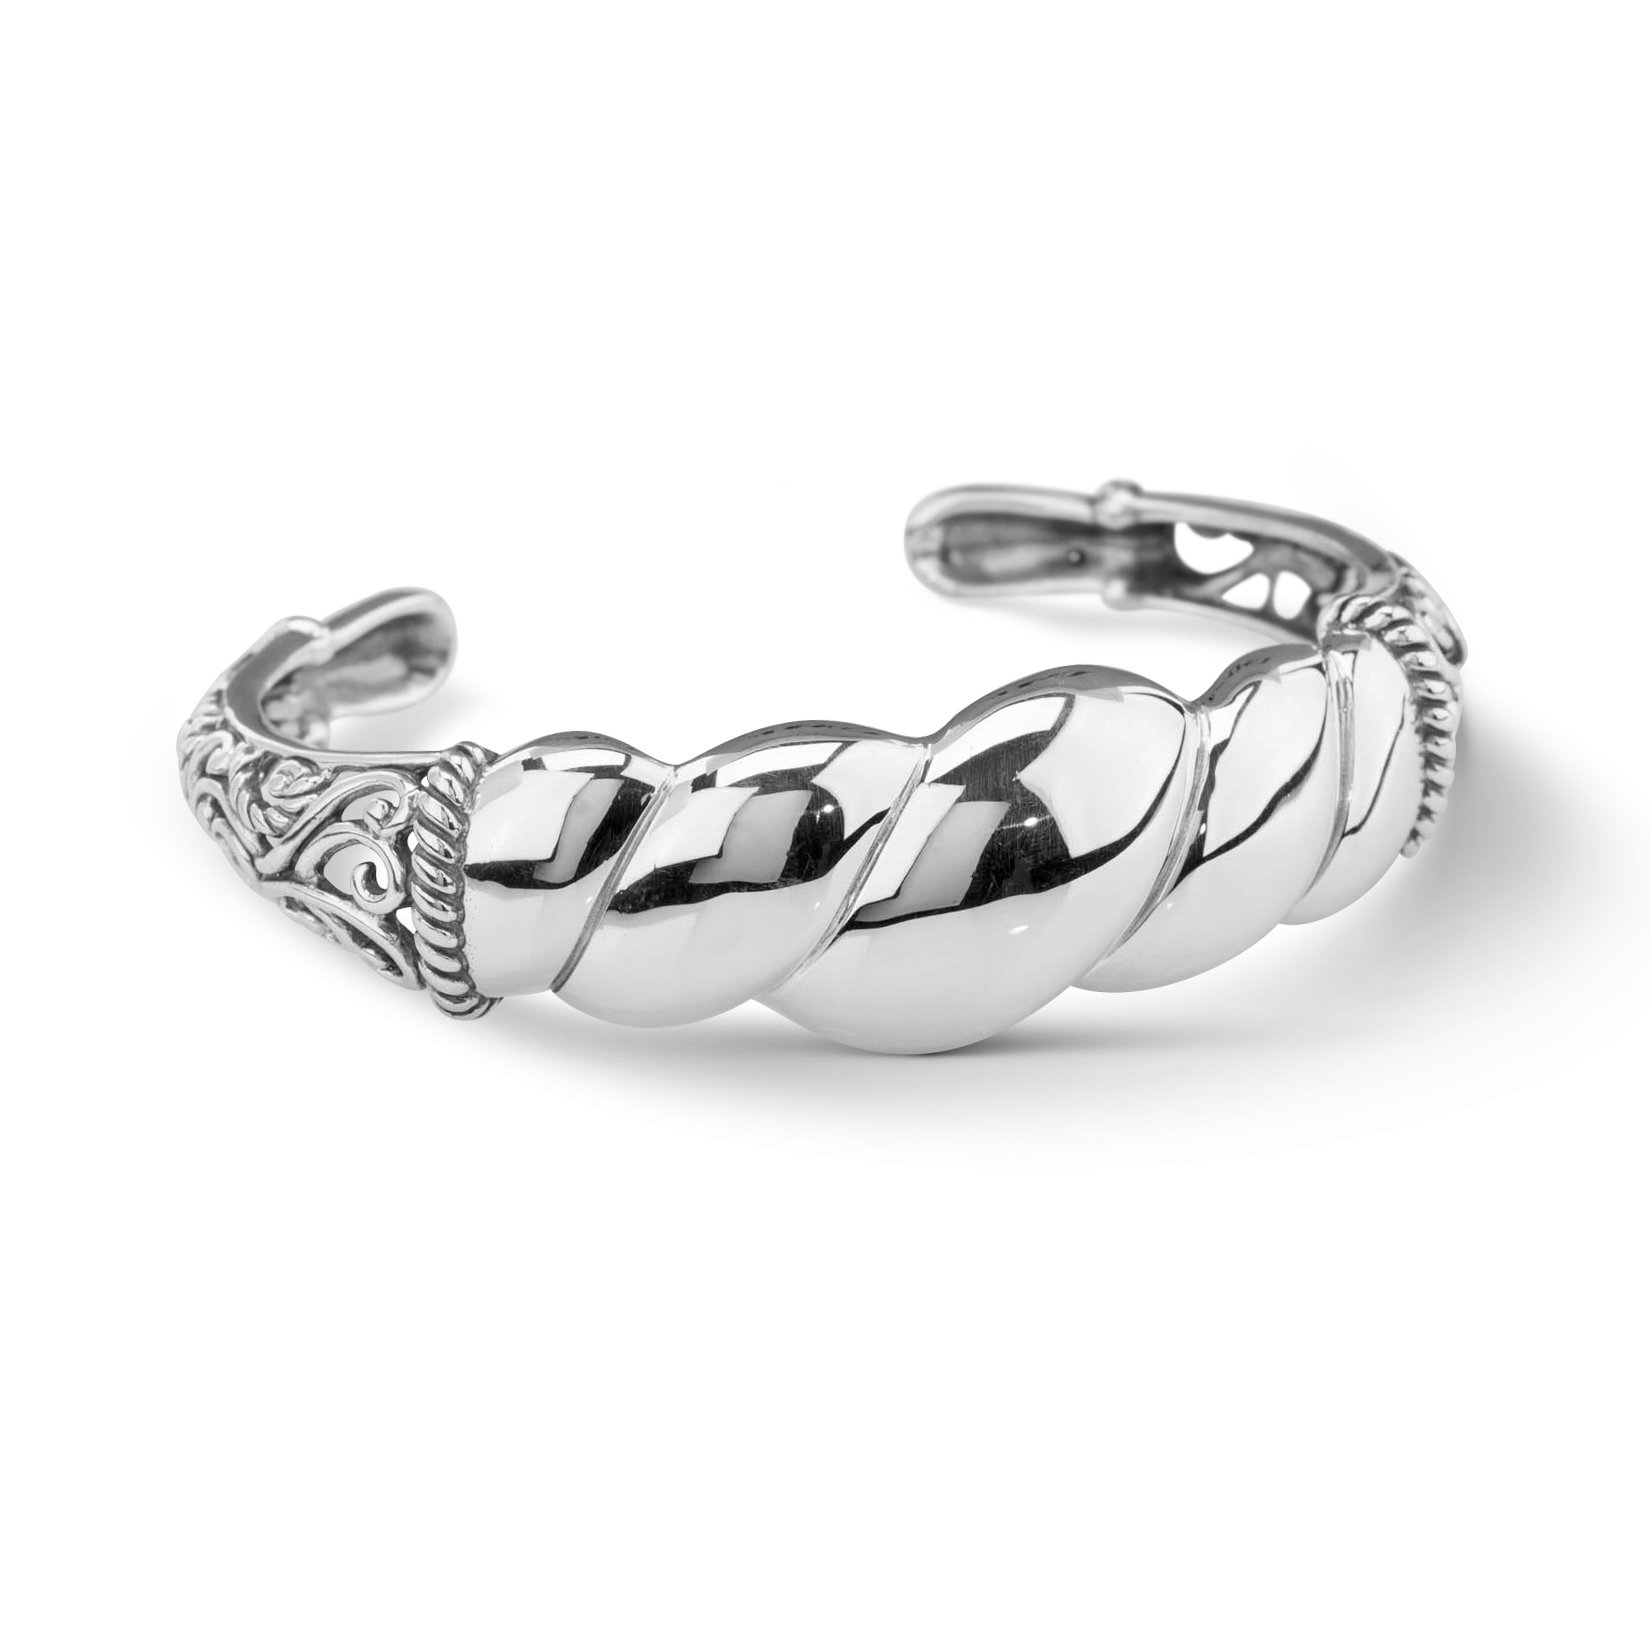 Carolyn Pollack Sterling Silver Twist Rope Cuff Bracelet Size S, M and L